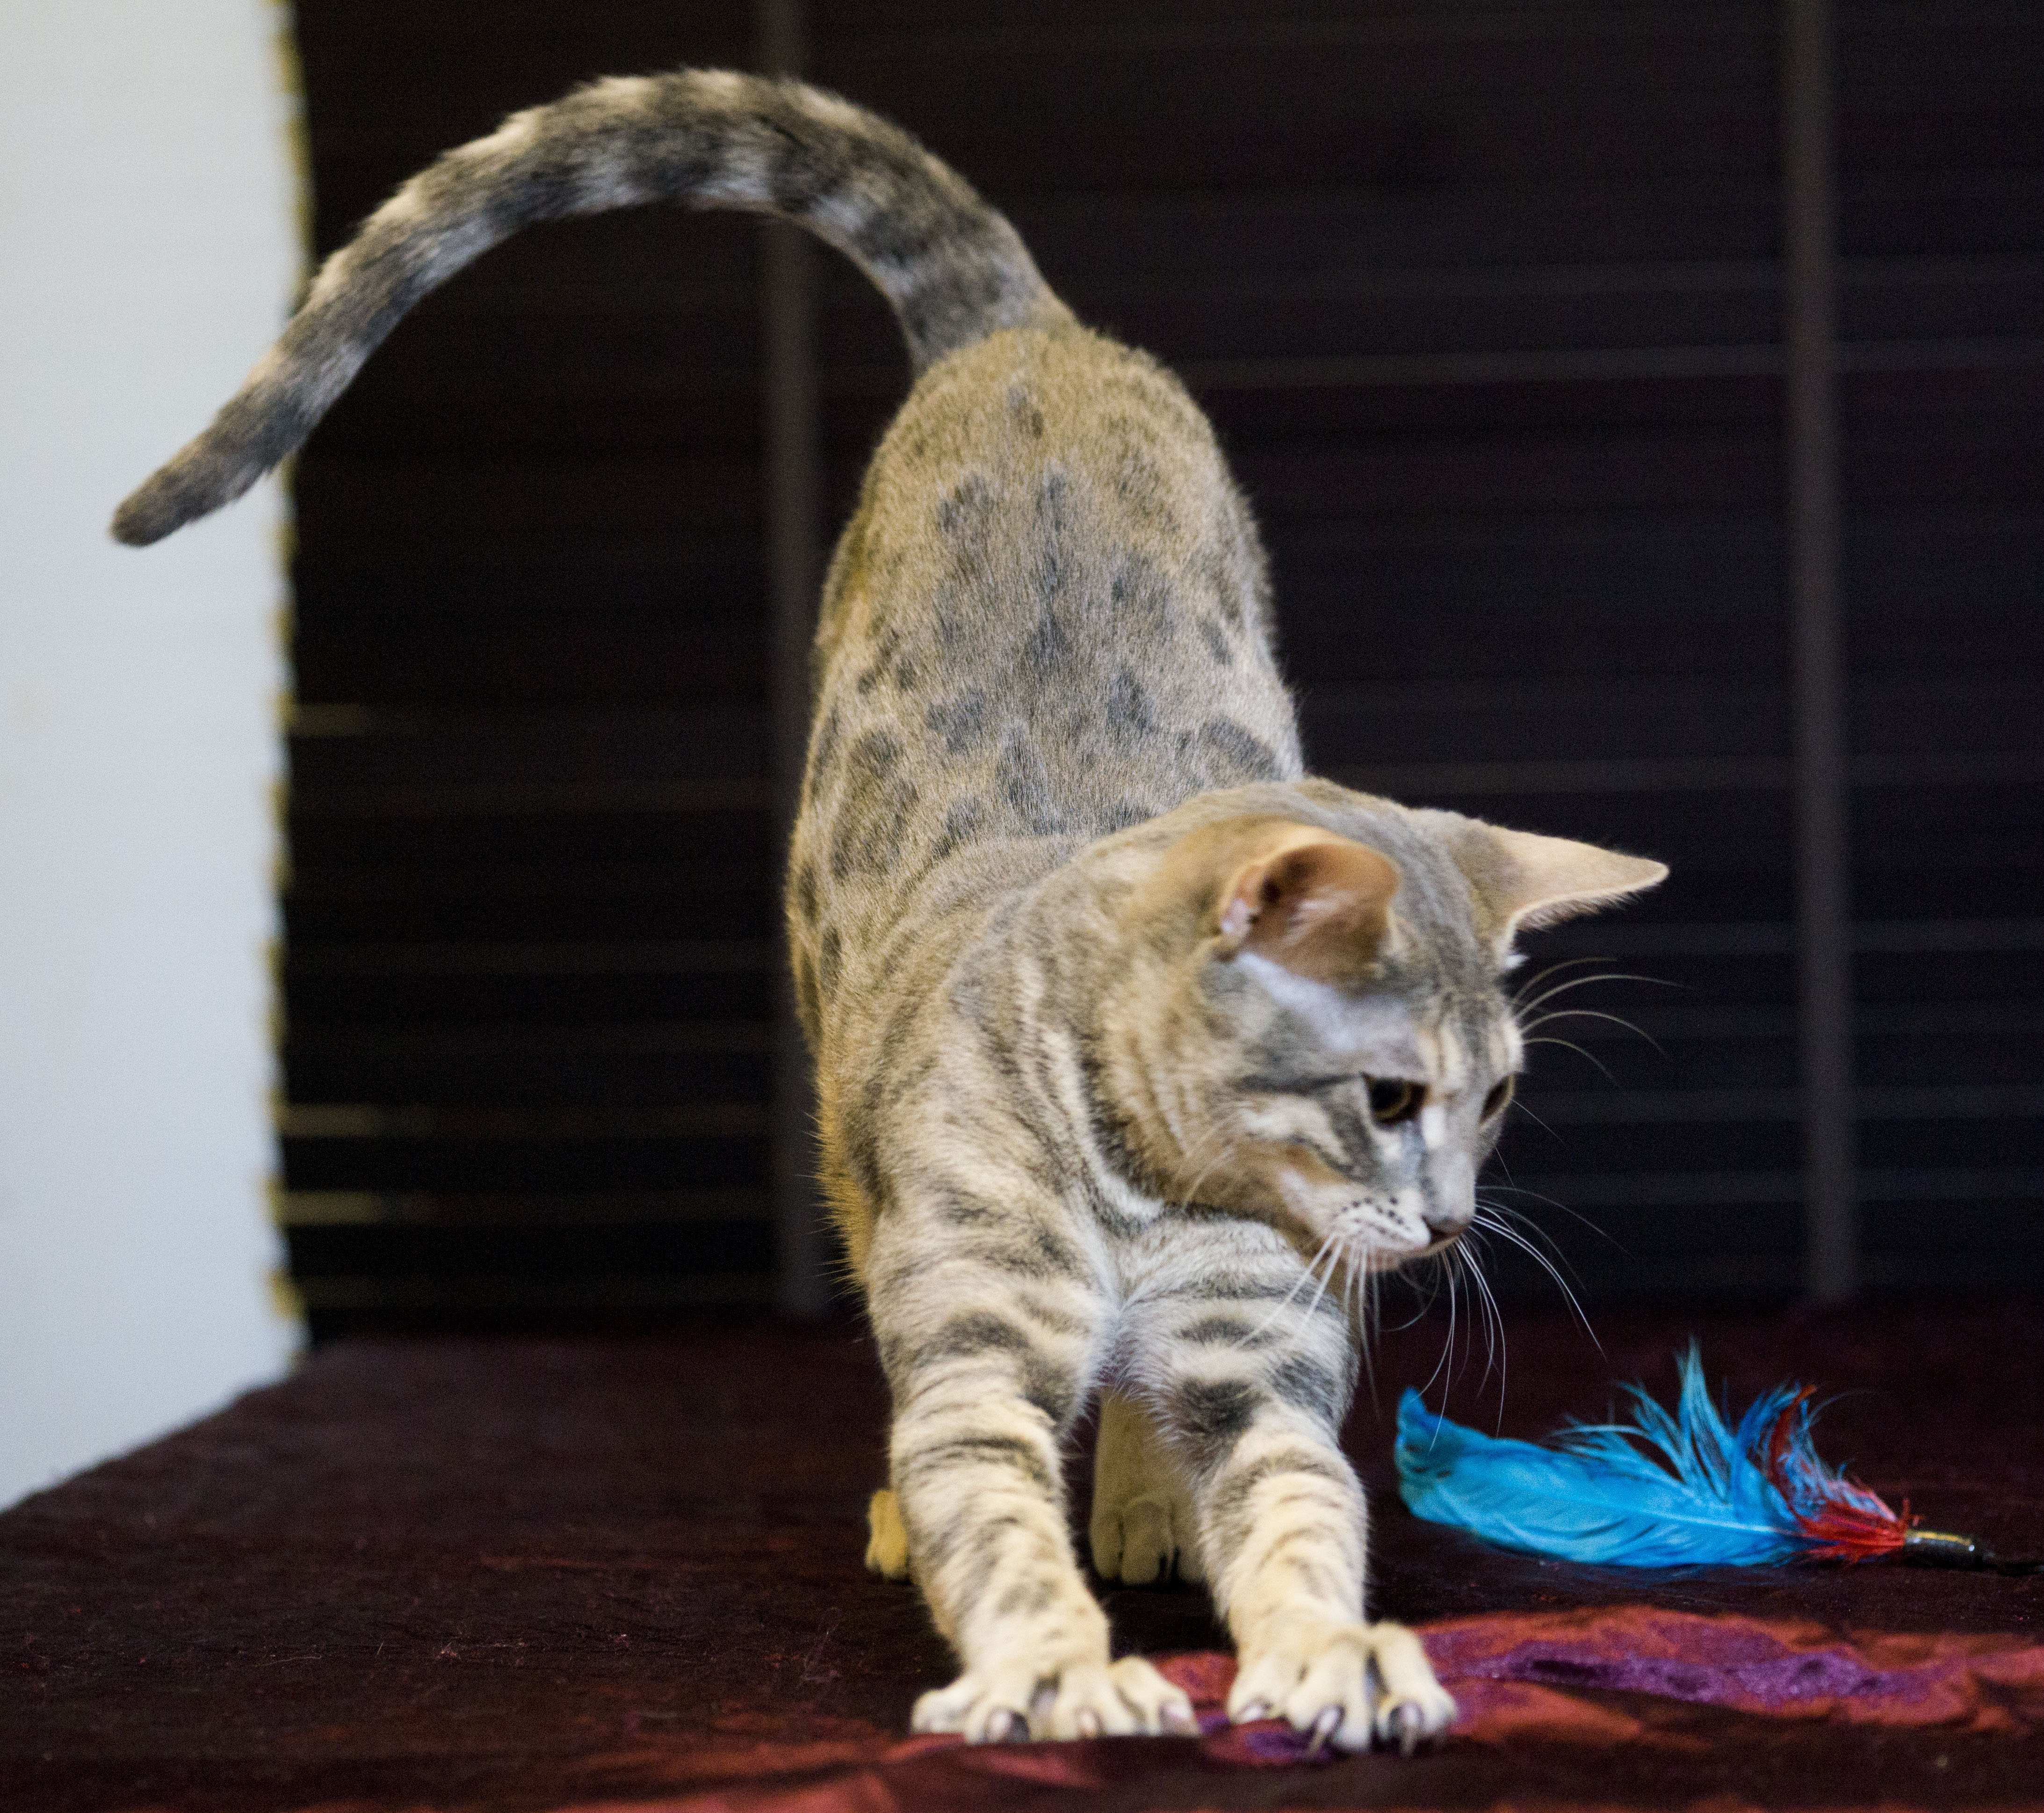 AsuraCats Kaito - Blue spotted/rosetted male Bengal